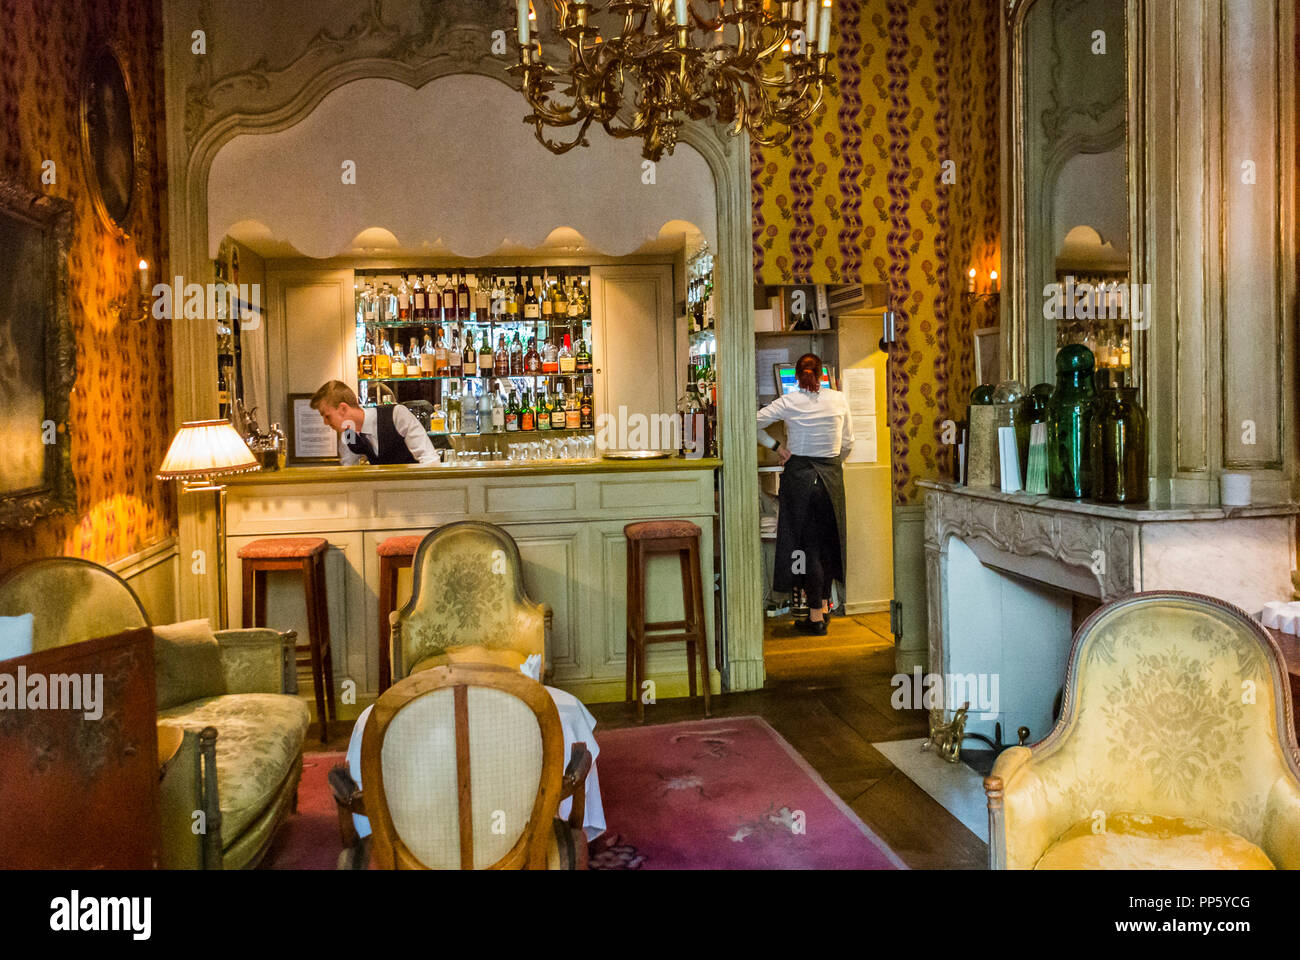 Avignon France Inside French Cafe Restaurant La Mirande Luxury Design Interior Stock Photo Alamy